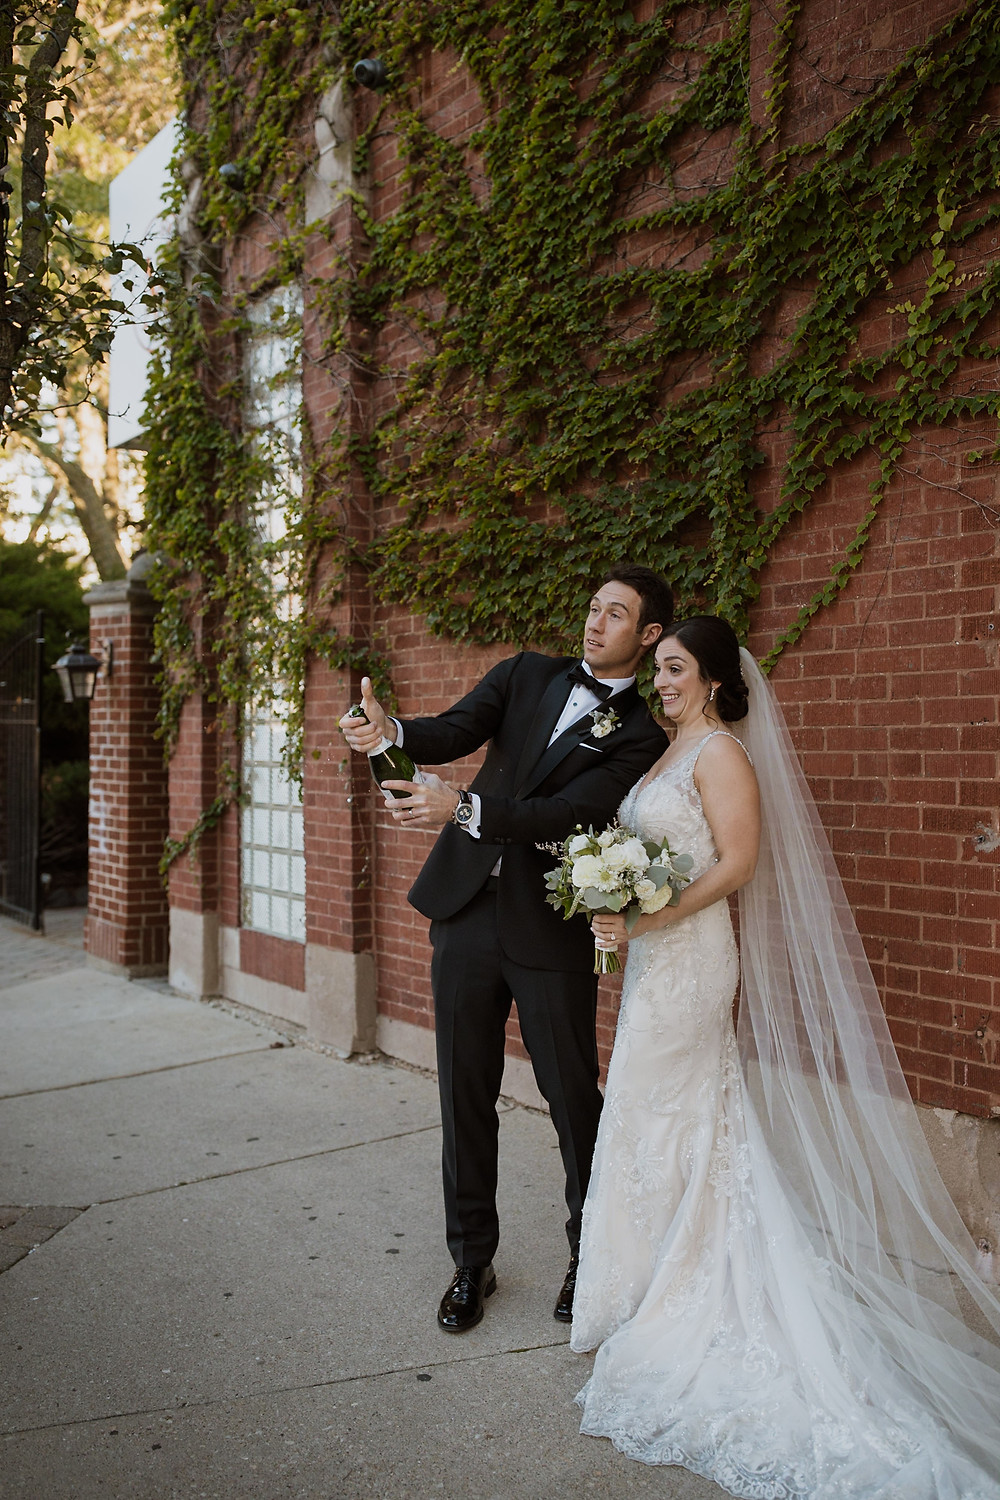 Couple popping champagne on their wedding day